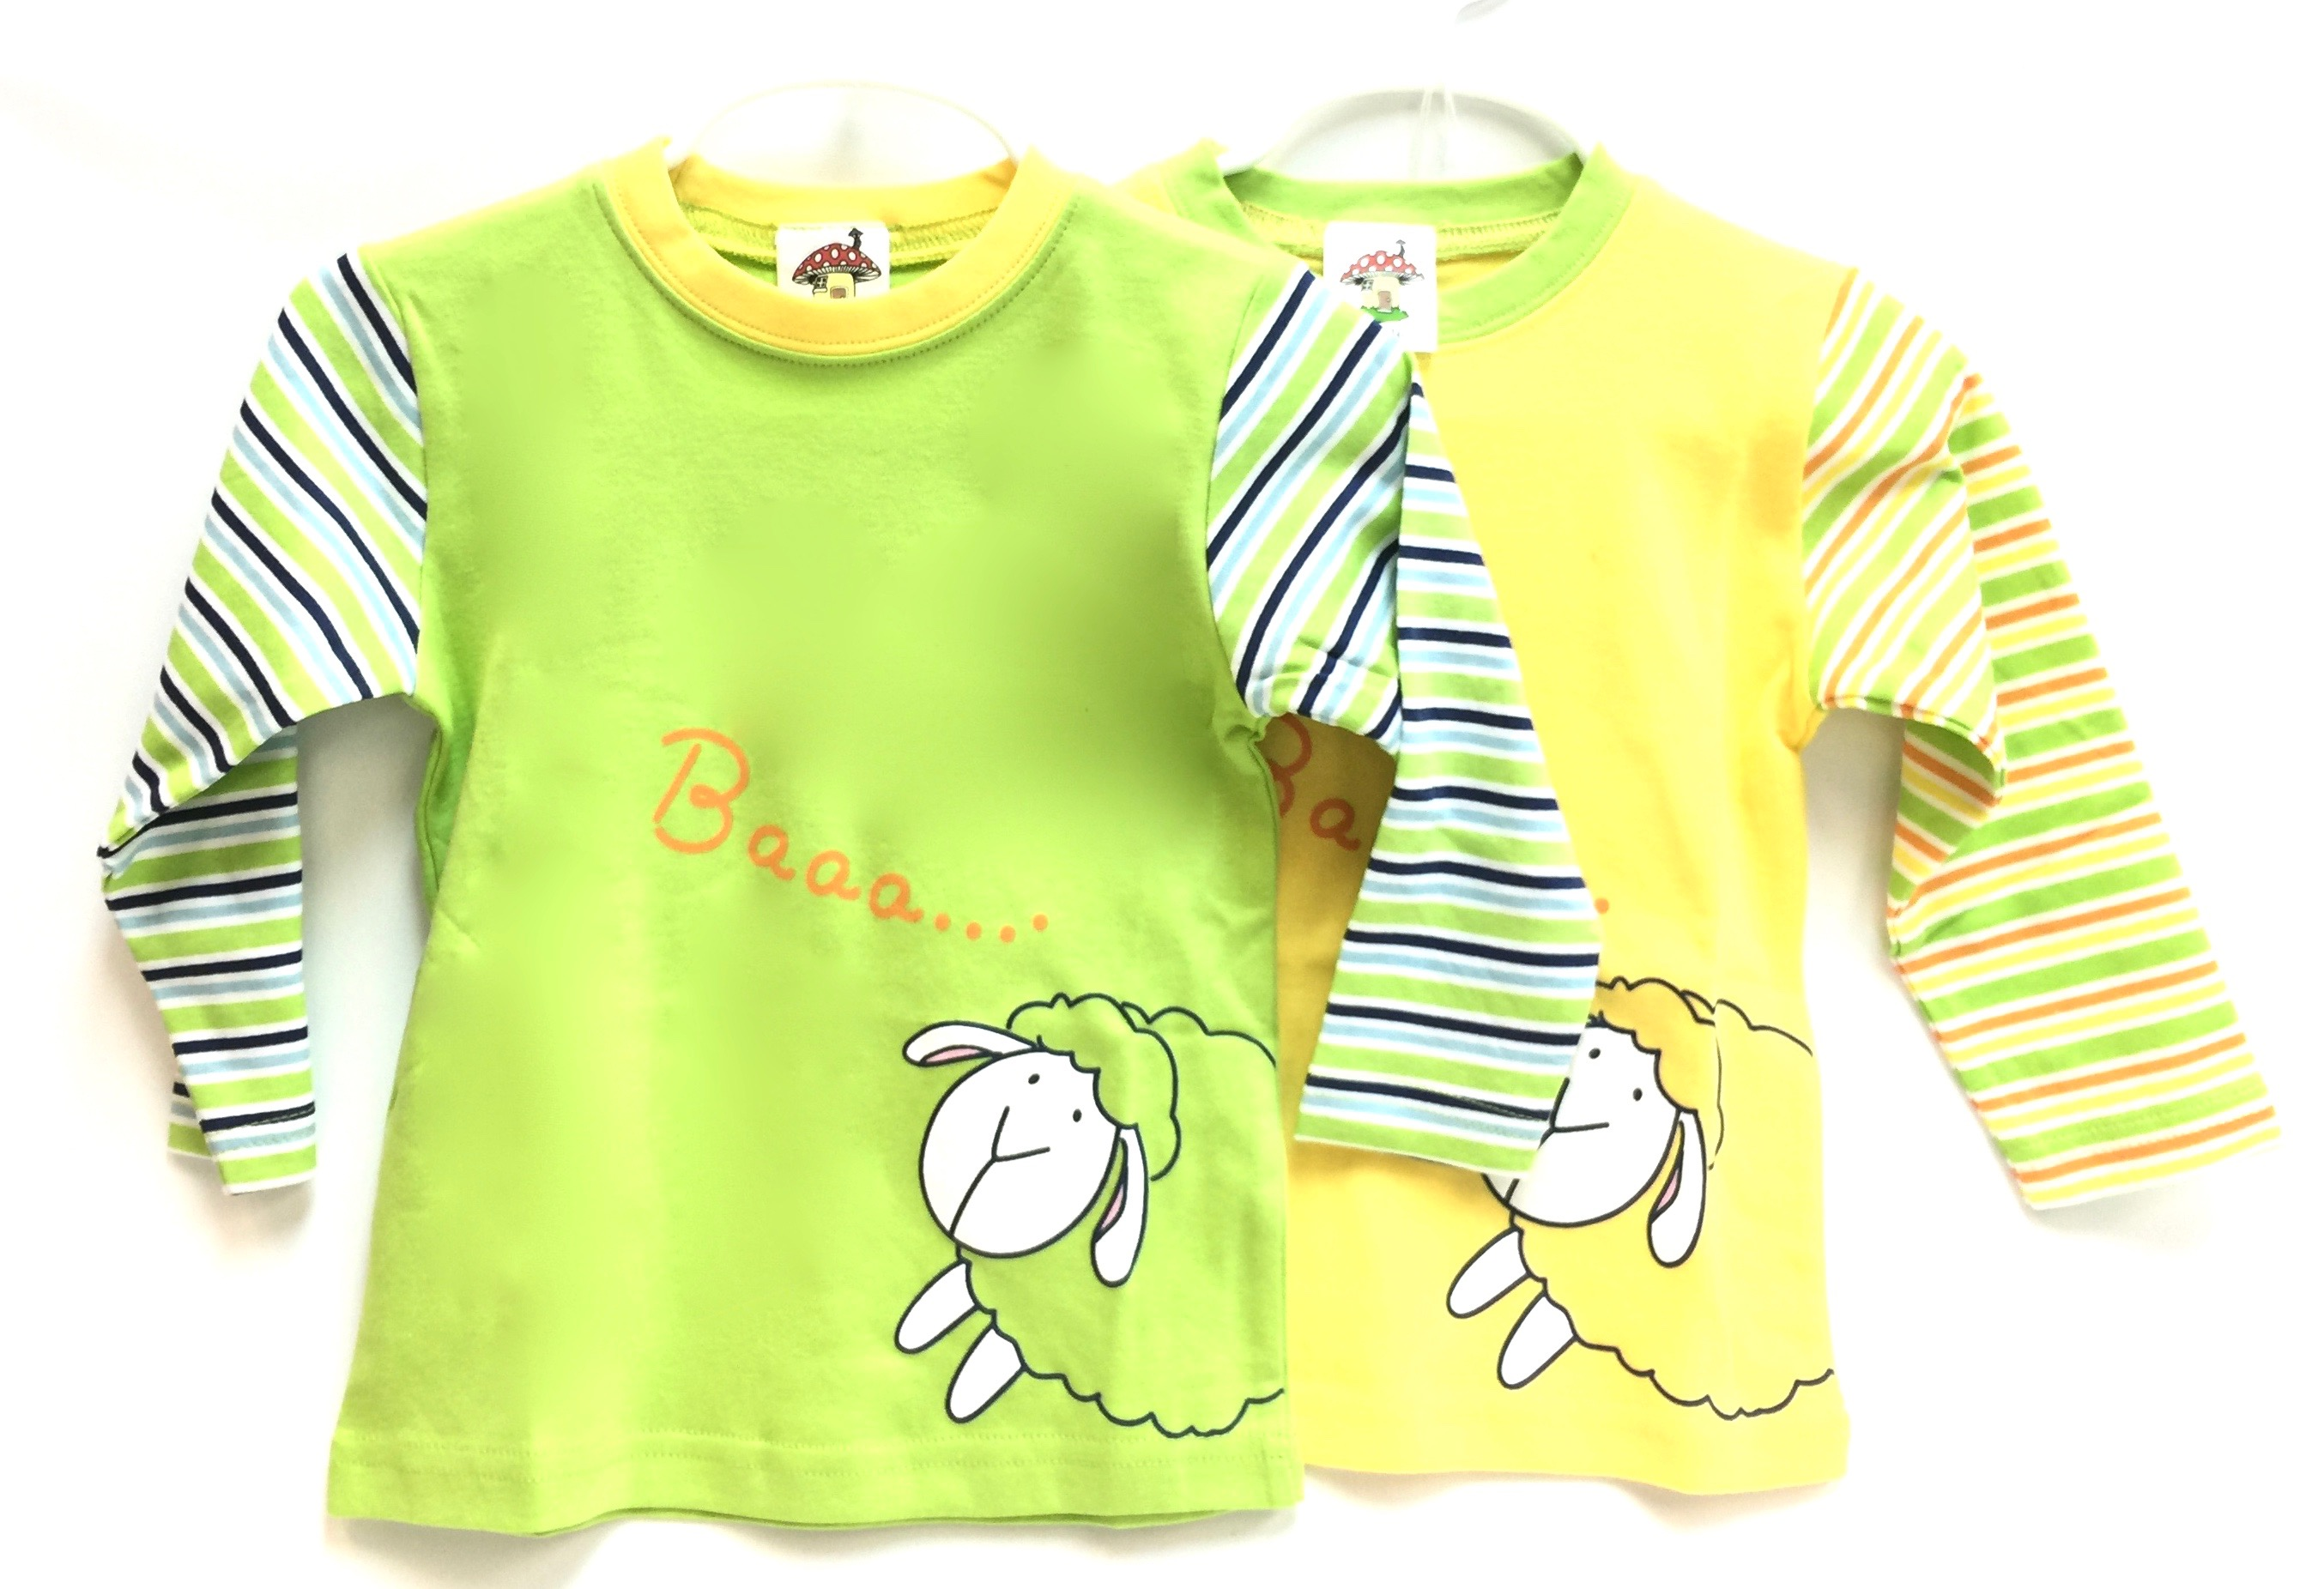 (IBWB511) Baaa Sheep Tee Shirt 2/A